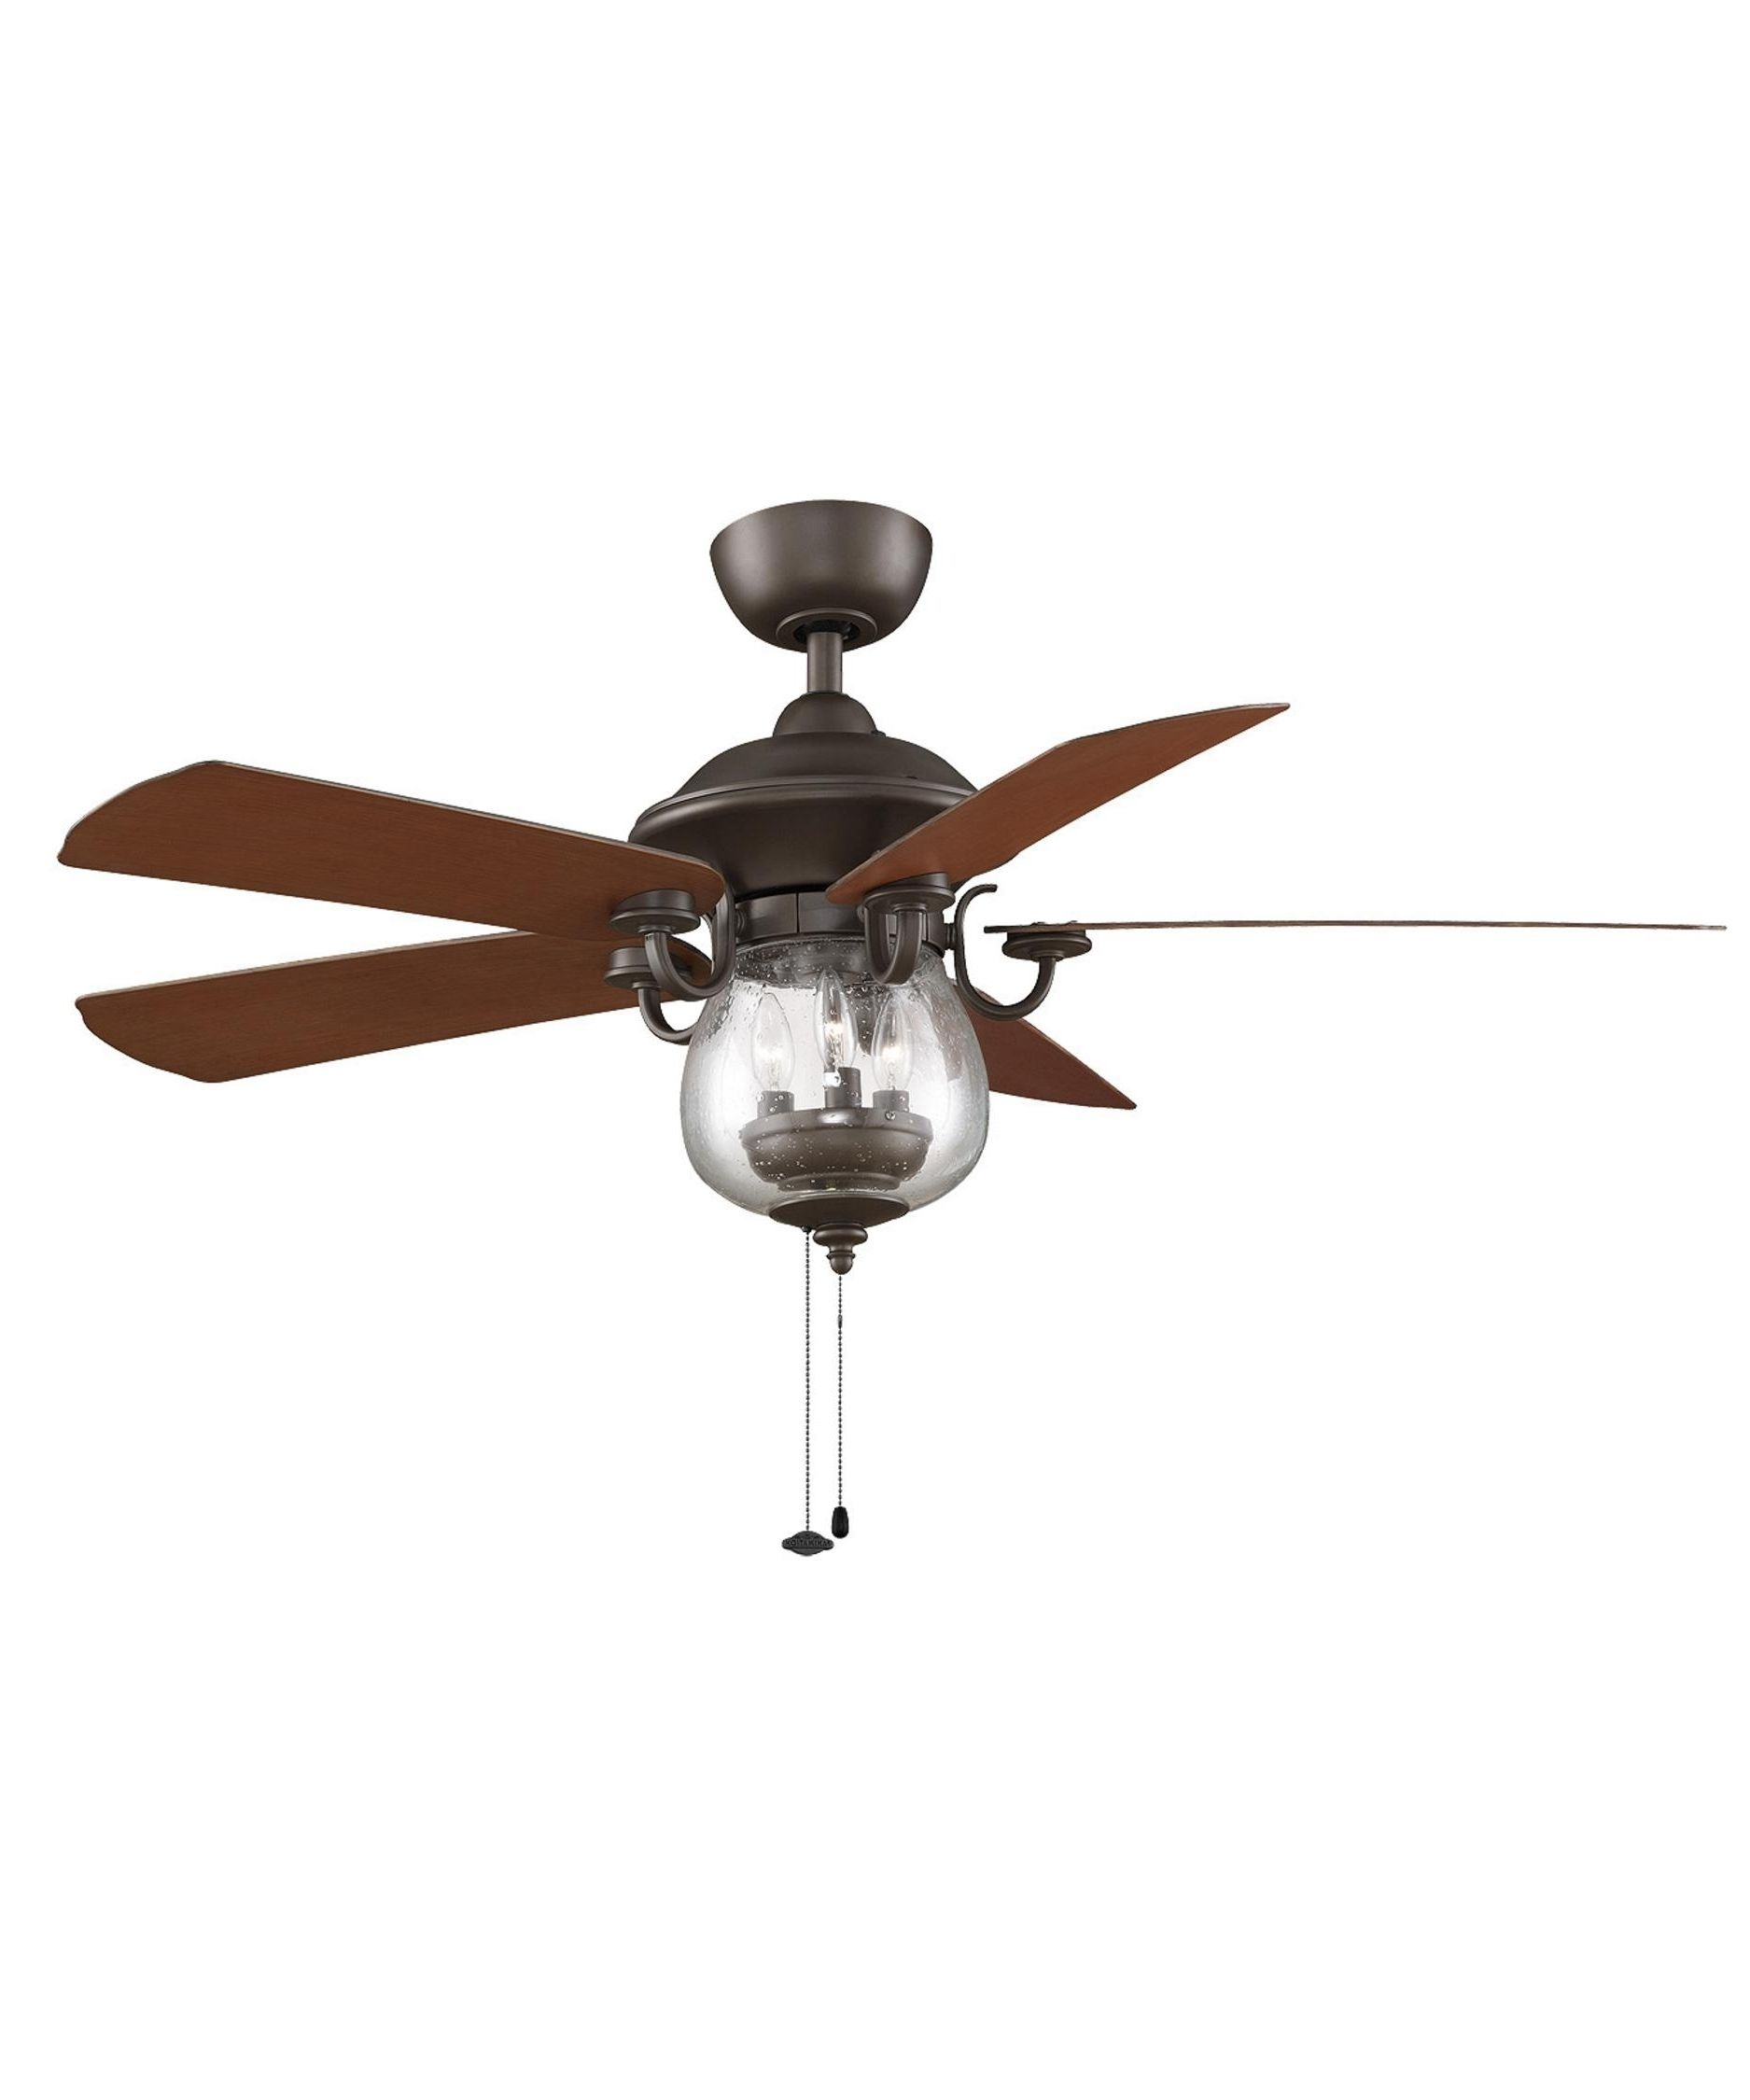 for grand ing outdoor dk also inch looks lowes at parts cream splendiferous minute peachy along ceiling silver pros with single hugger ceilings fans decent fan hunter five light kit brace blade